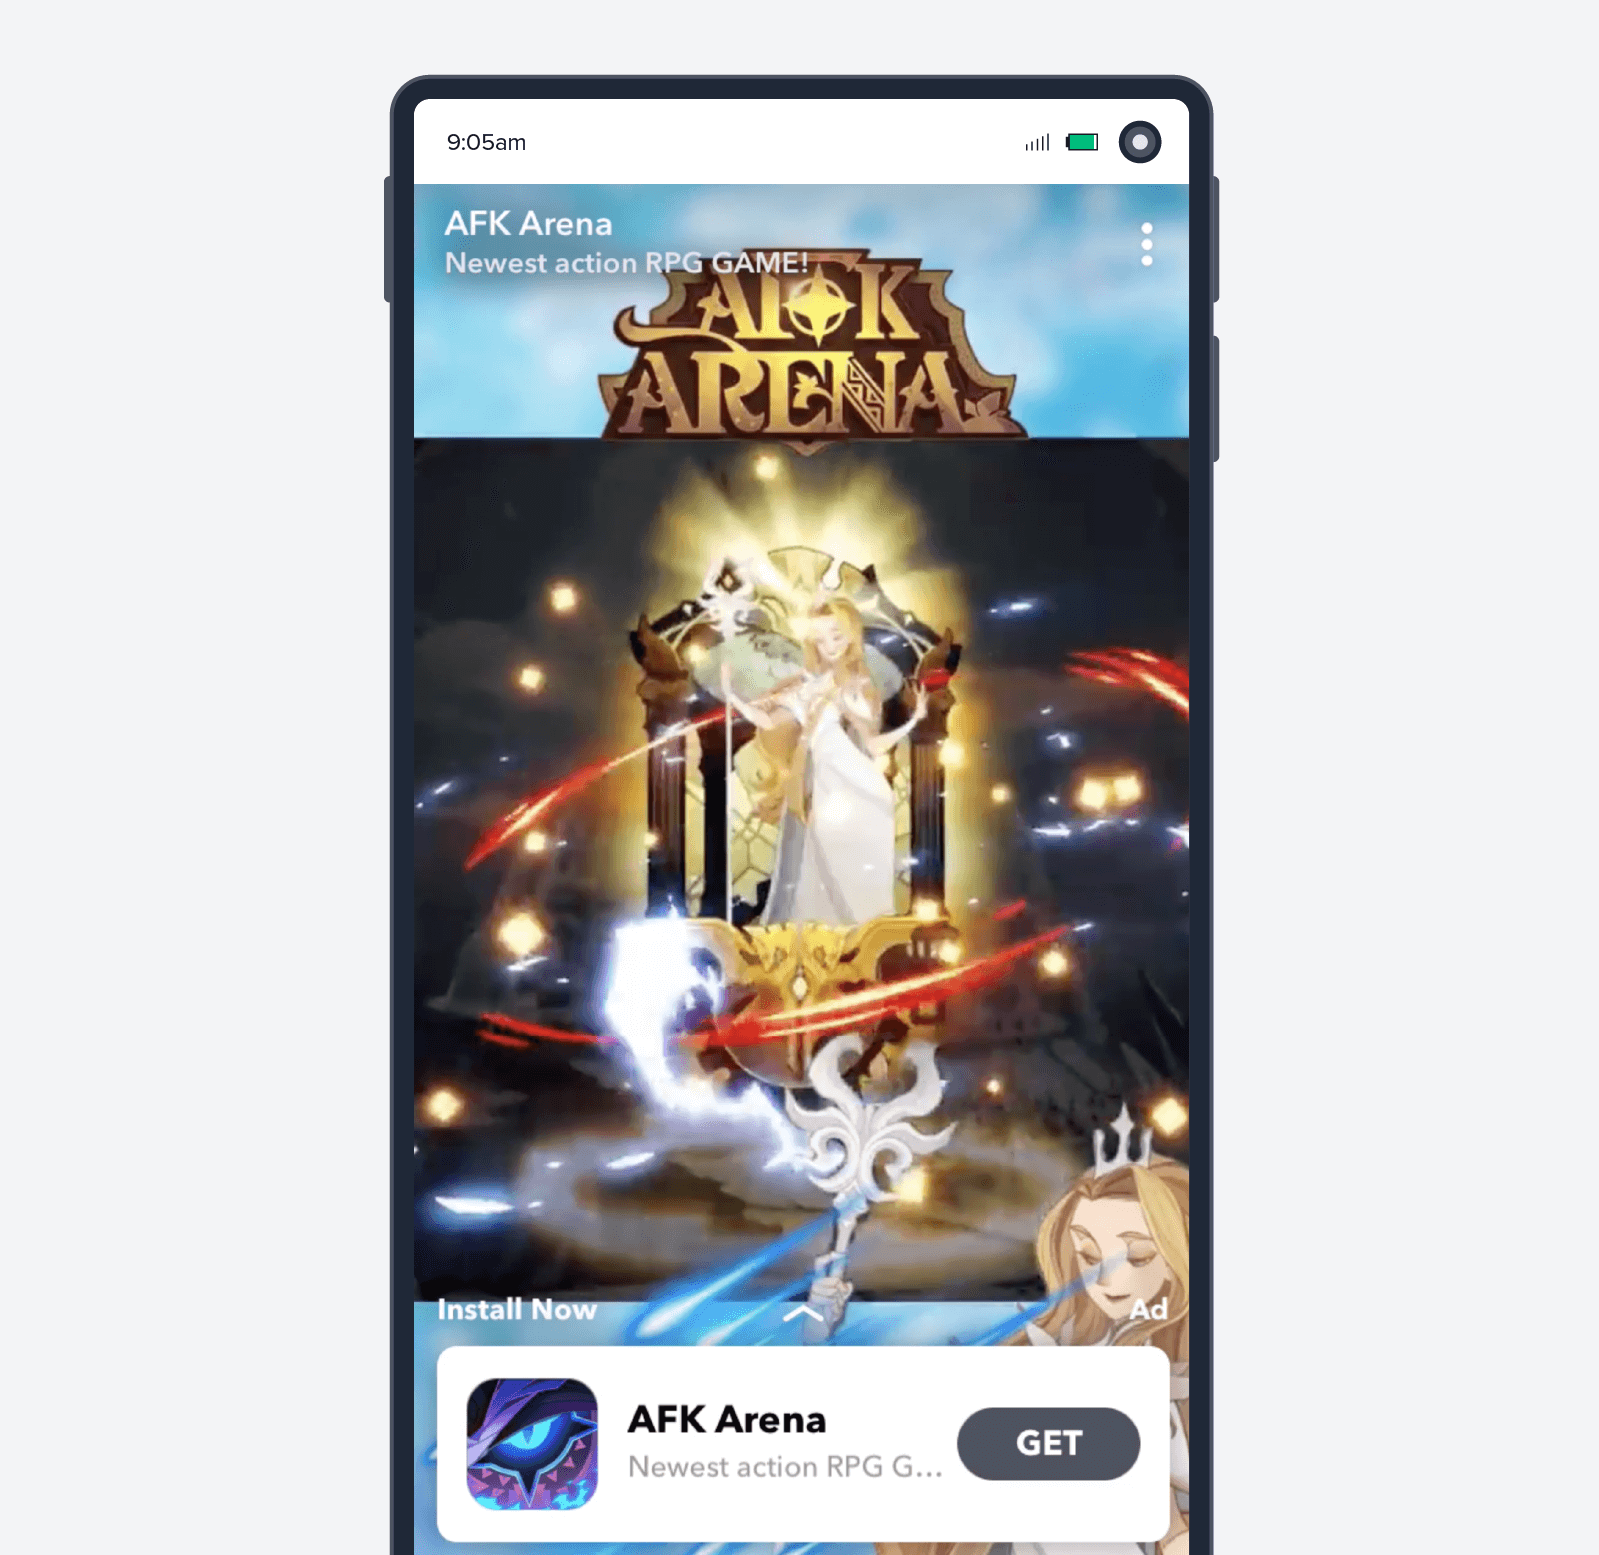 AFK arena games mobile ad